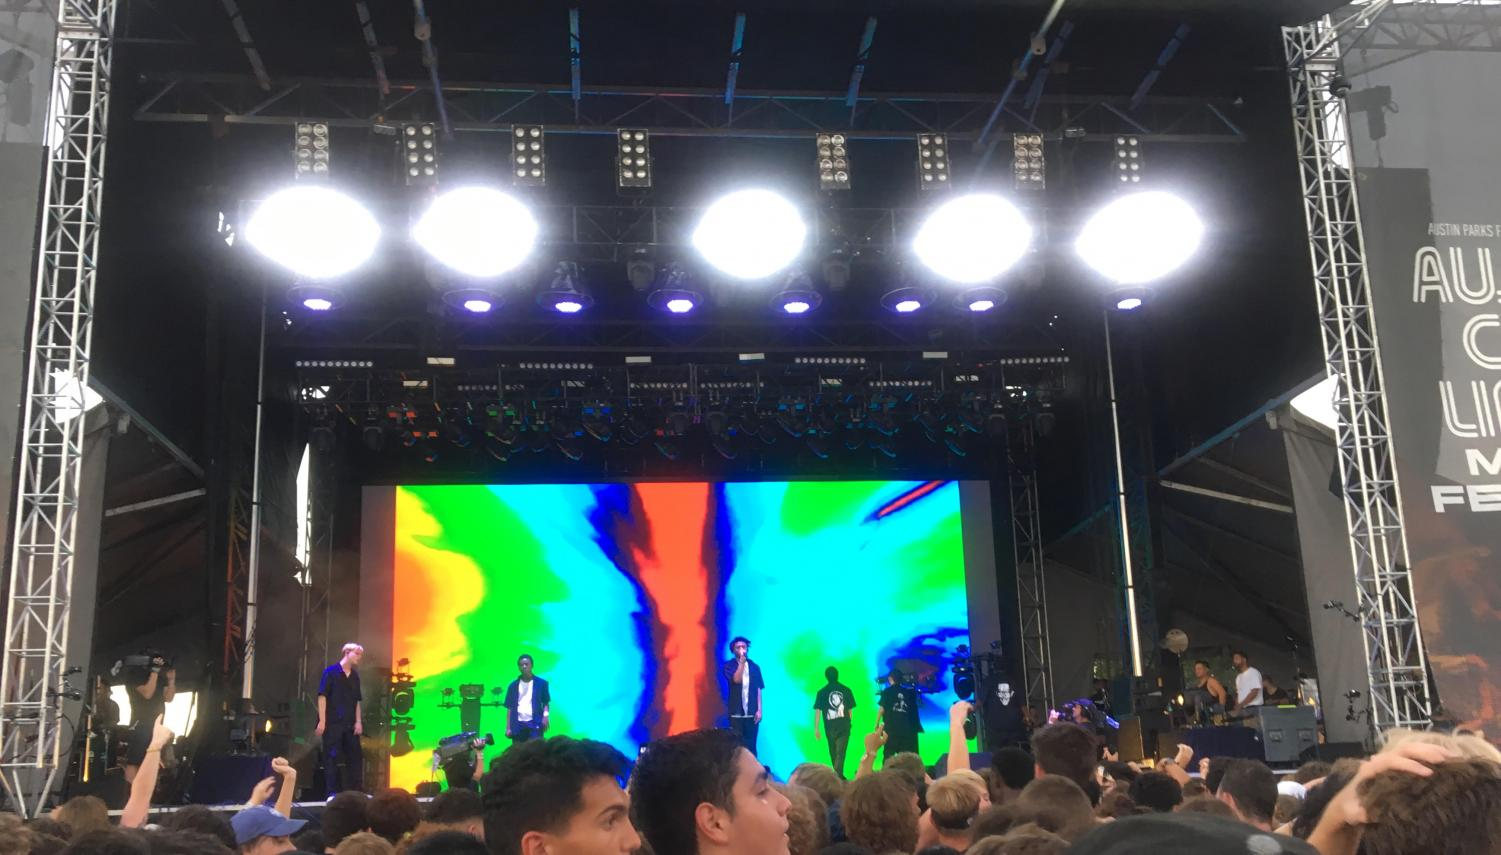 Stage at the Austin City Limits Music Festival. Brockhampton was on stage. Photo courtesy of Kaitlyn Goldstein.